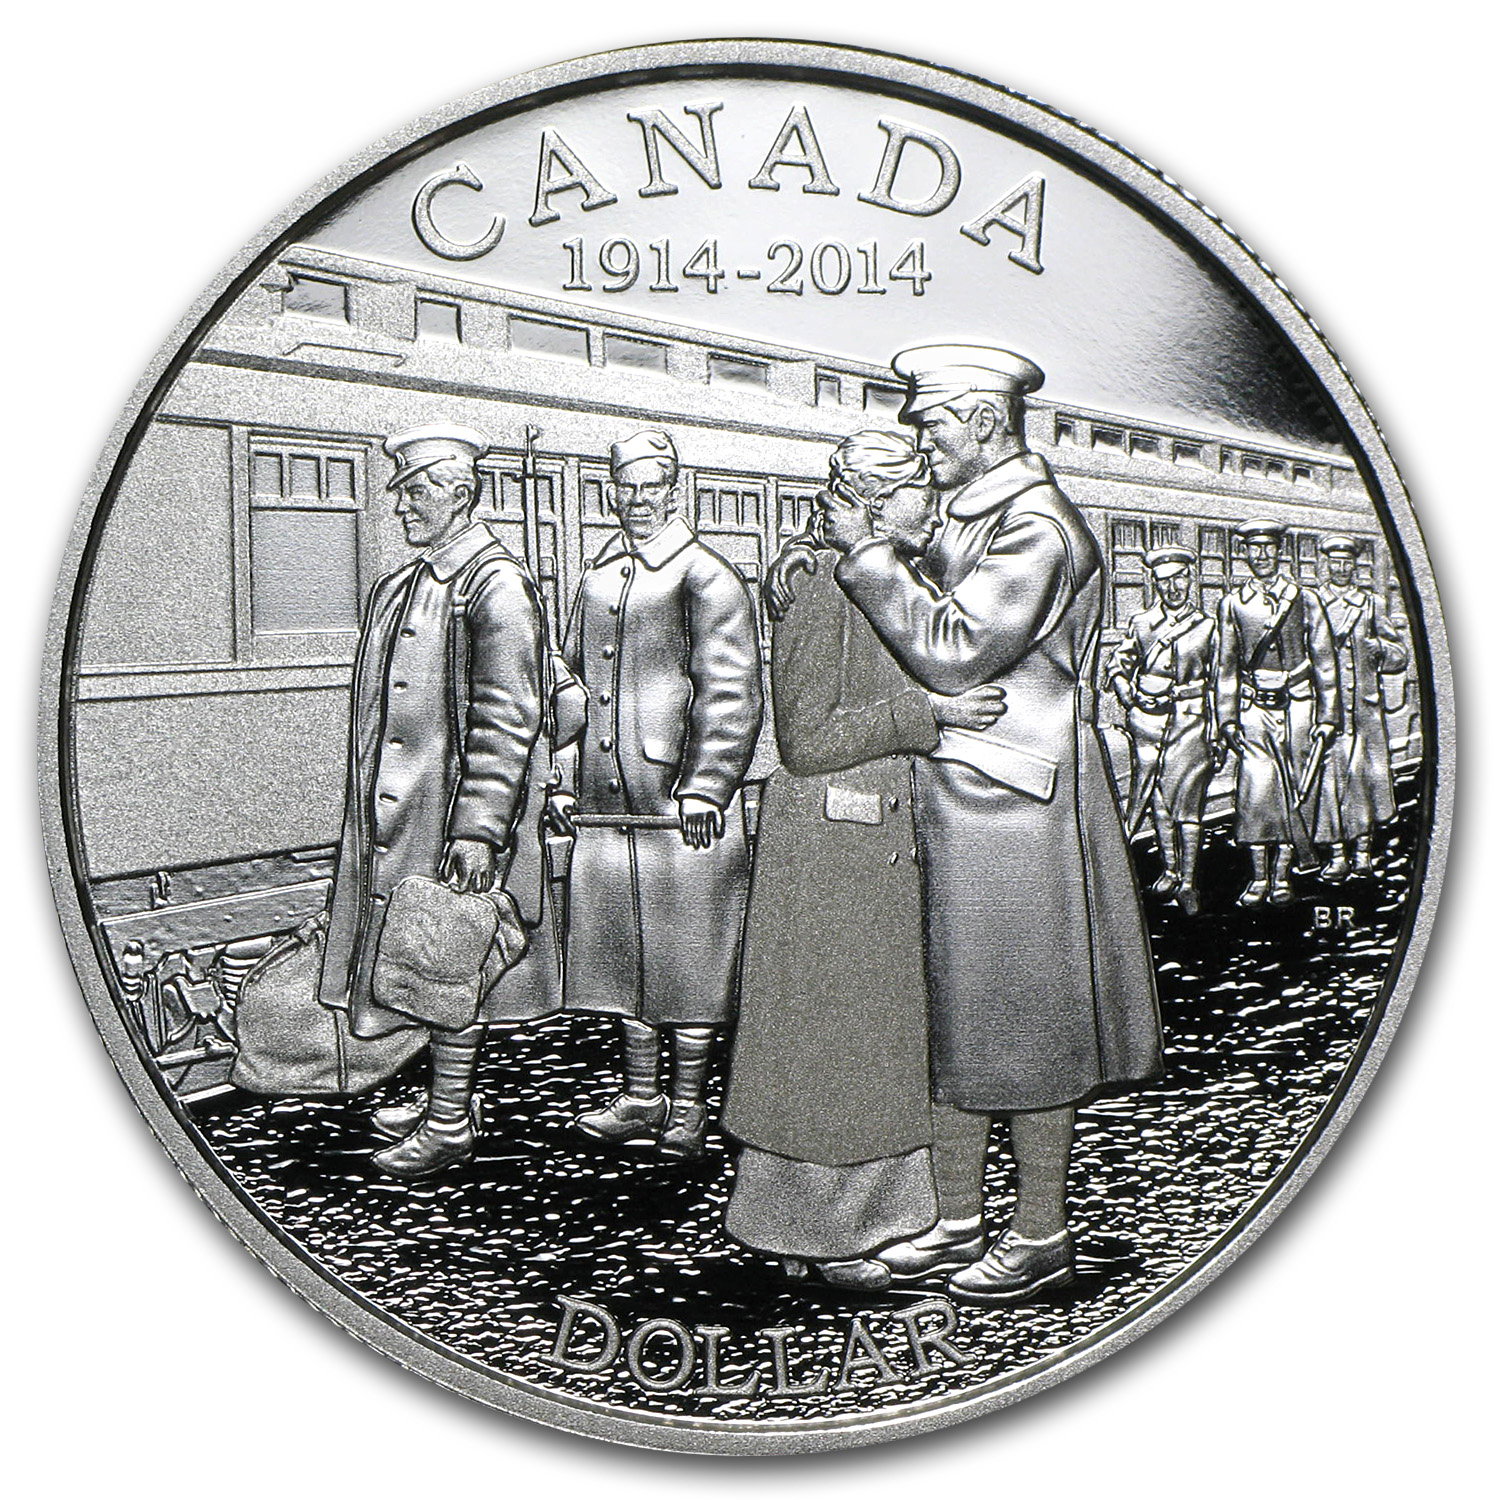 2014 Silver Canadian 100th Anniv. of the Declaration of WW1 Proof